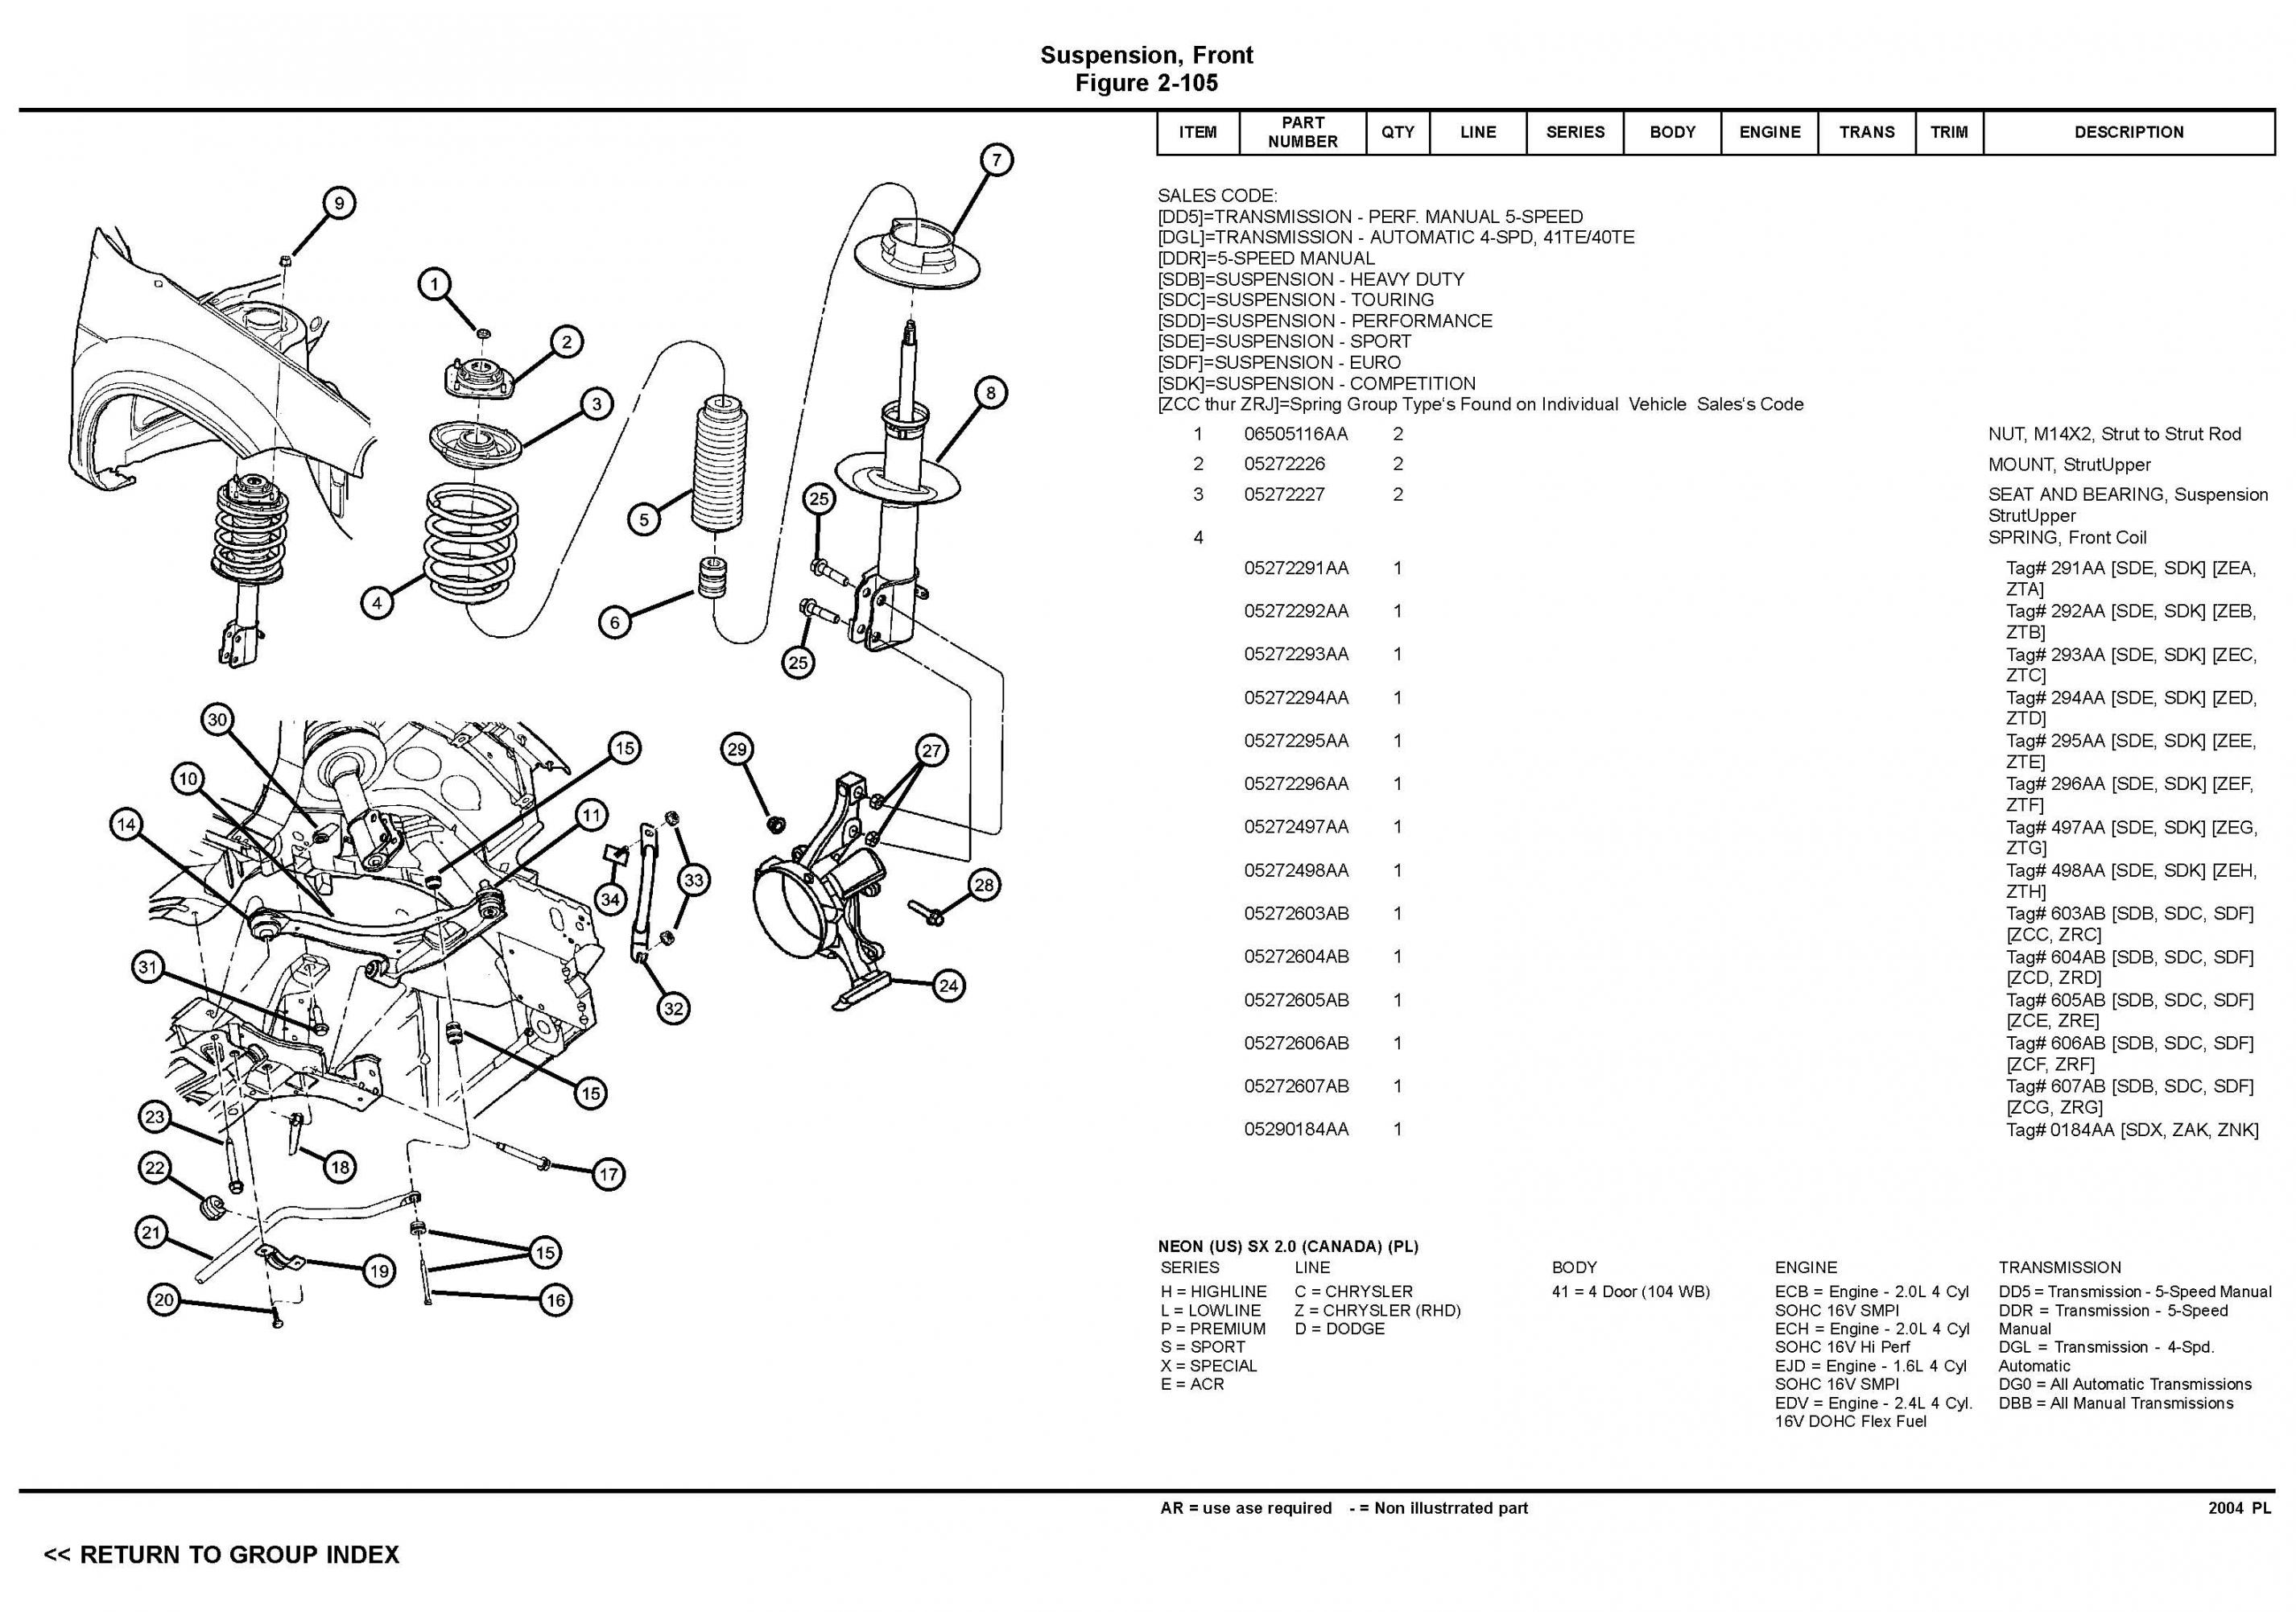 2005 Pt Cruiser Front Suspension Diagram Not Lossing Wiring 04 Schematic Srt 4 Faq Dodge Forum Rh Srtforums Com Rear 2004